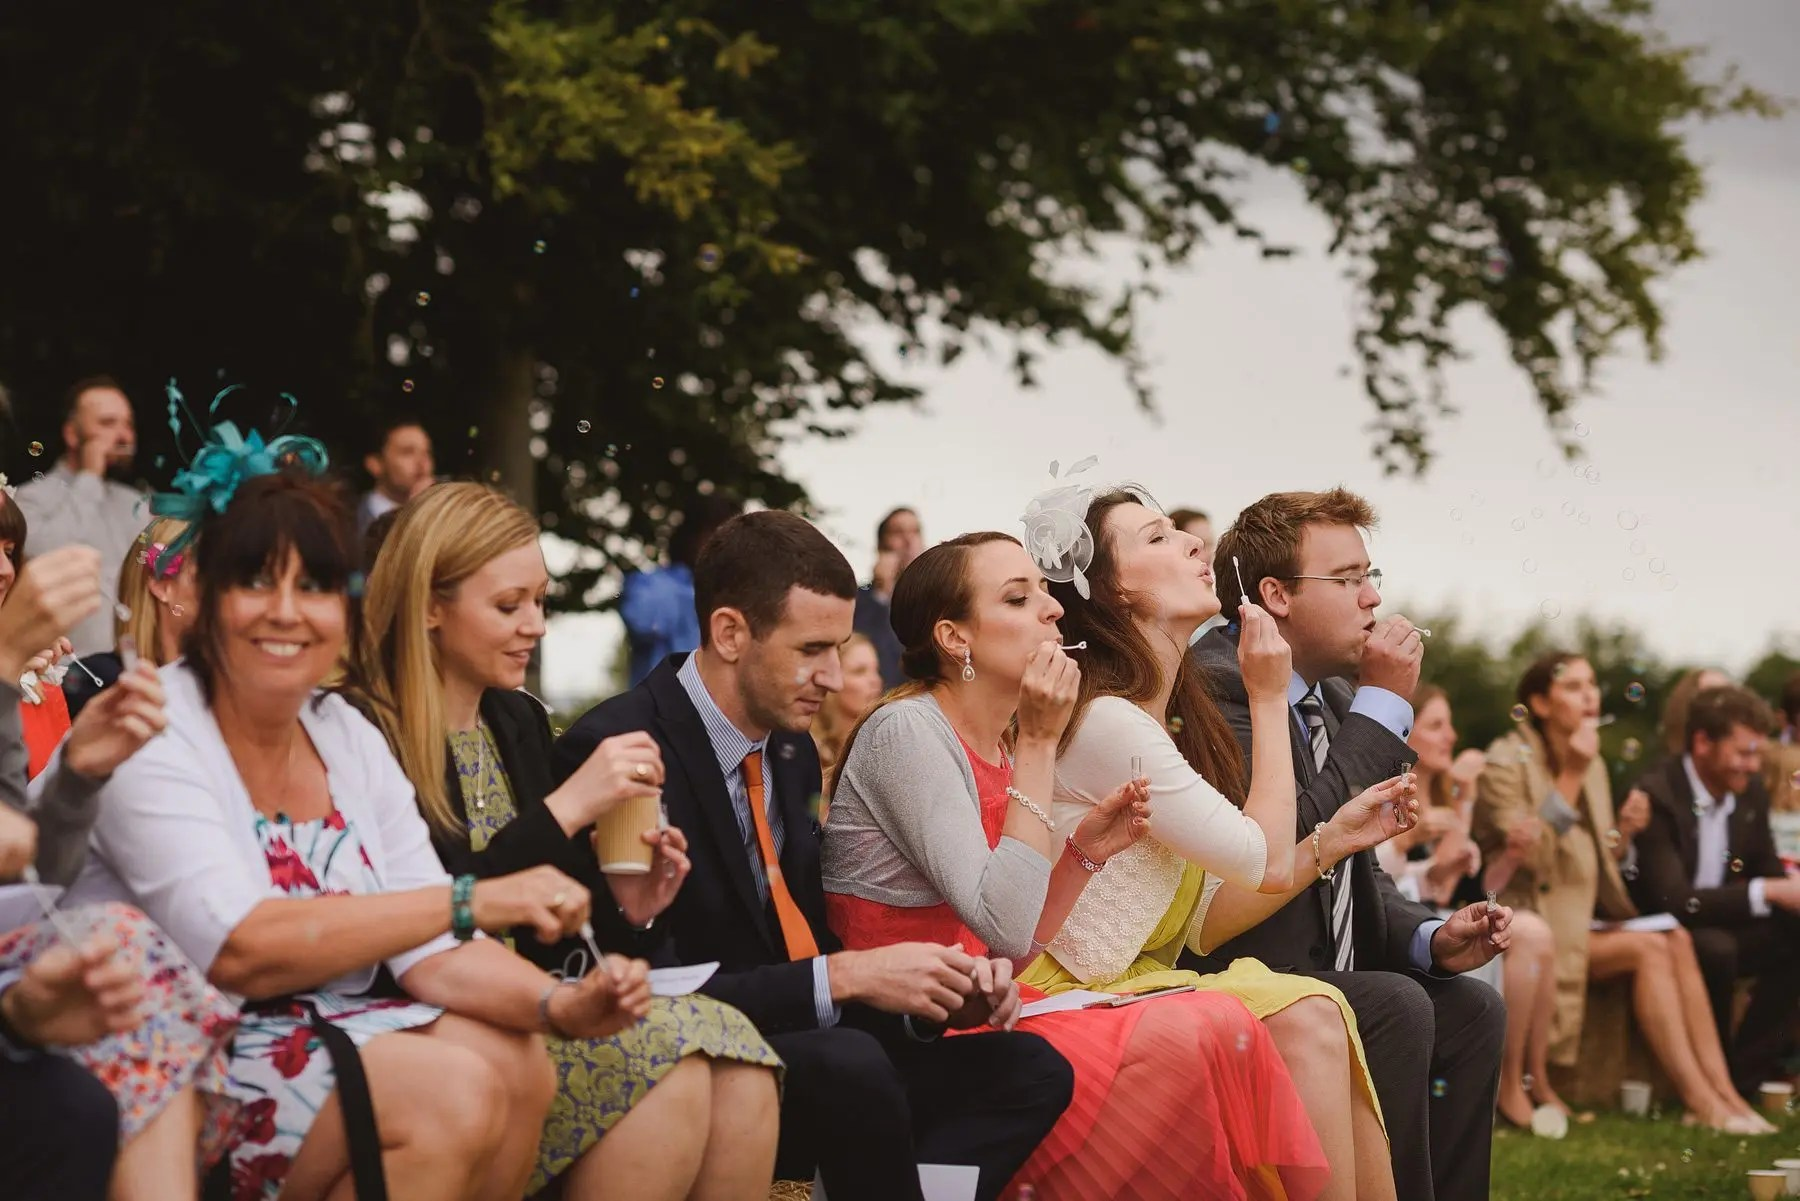 guests blowing bubbles during wedding ceremony